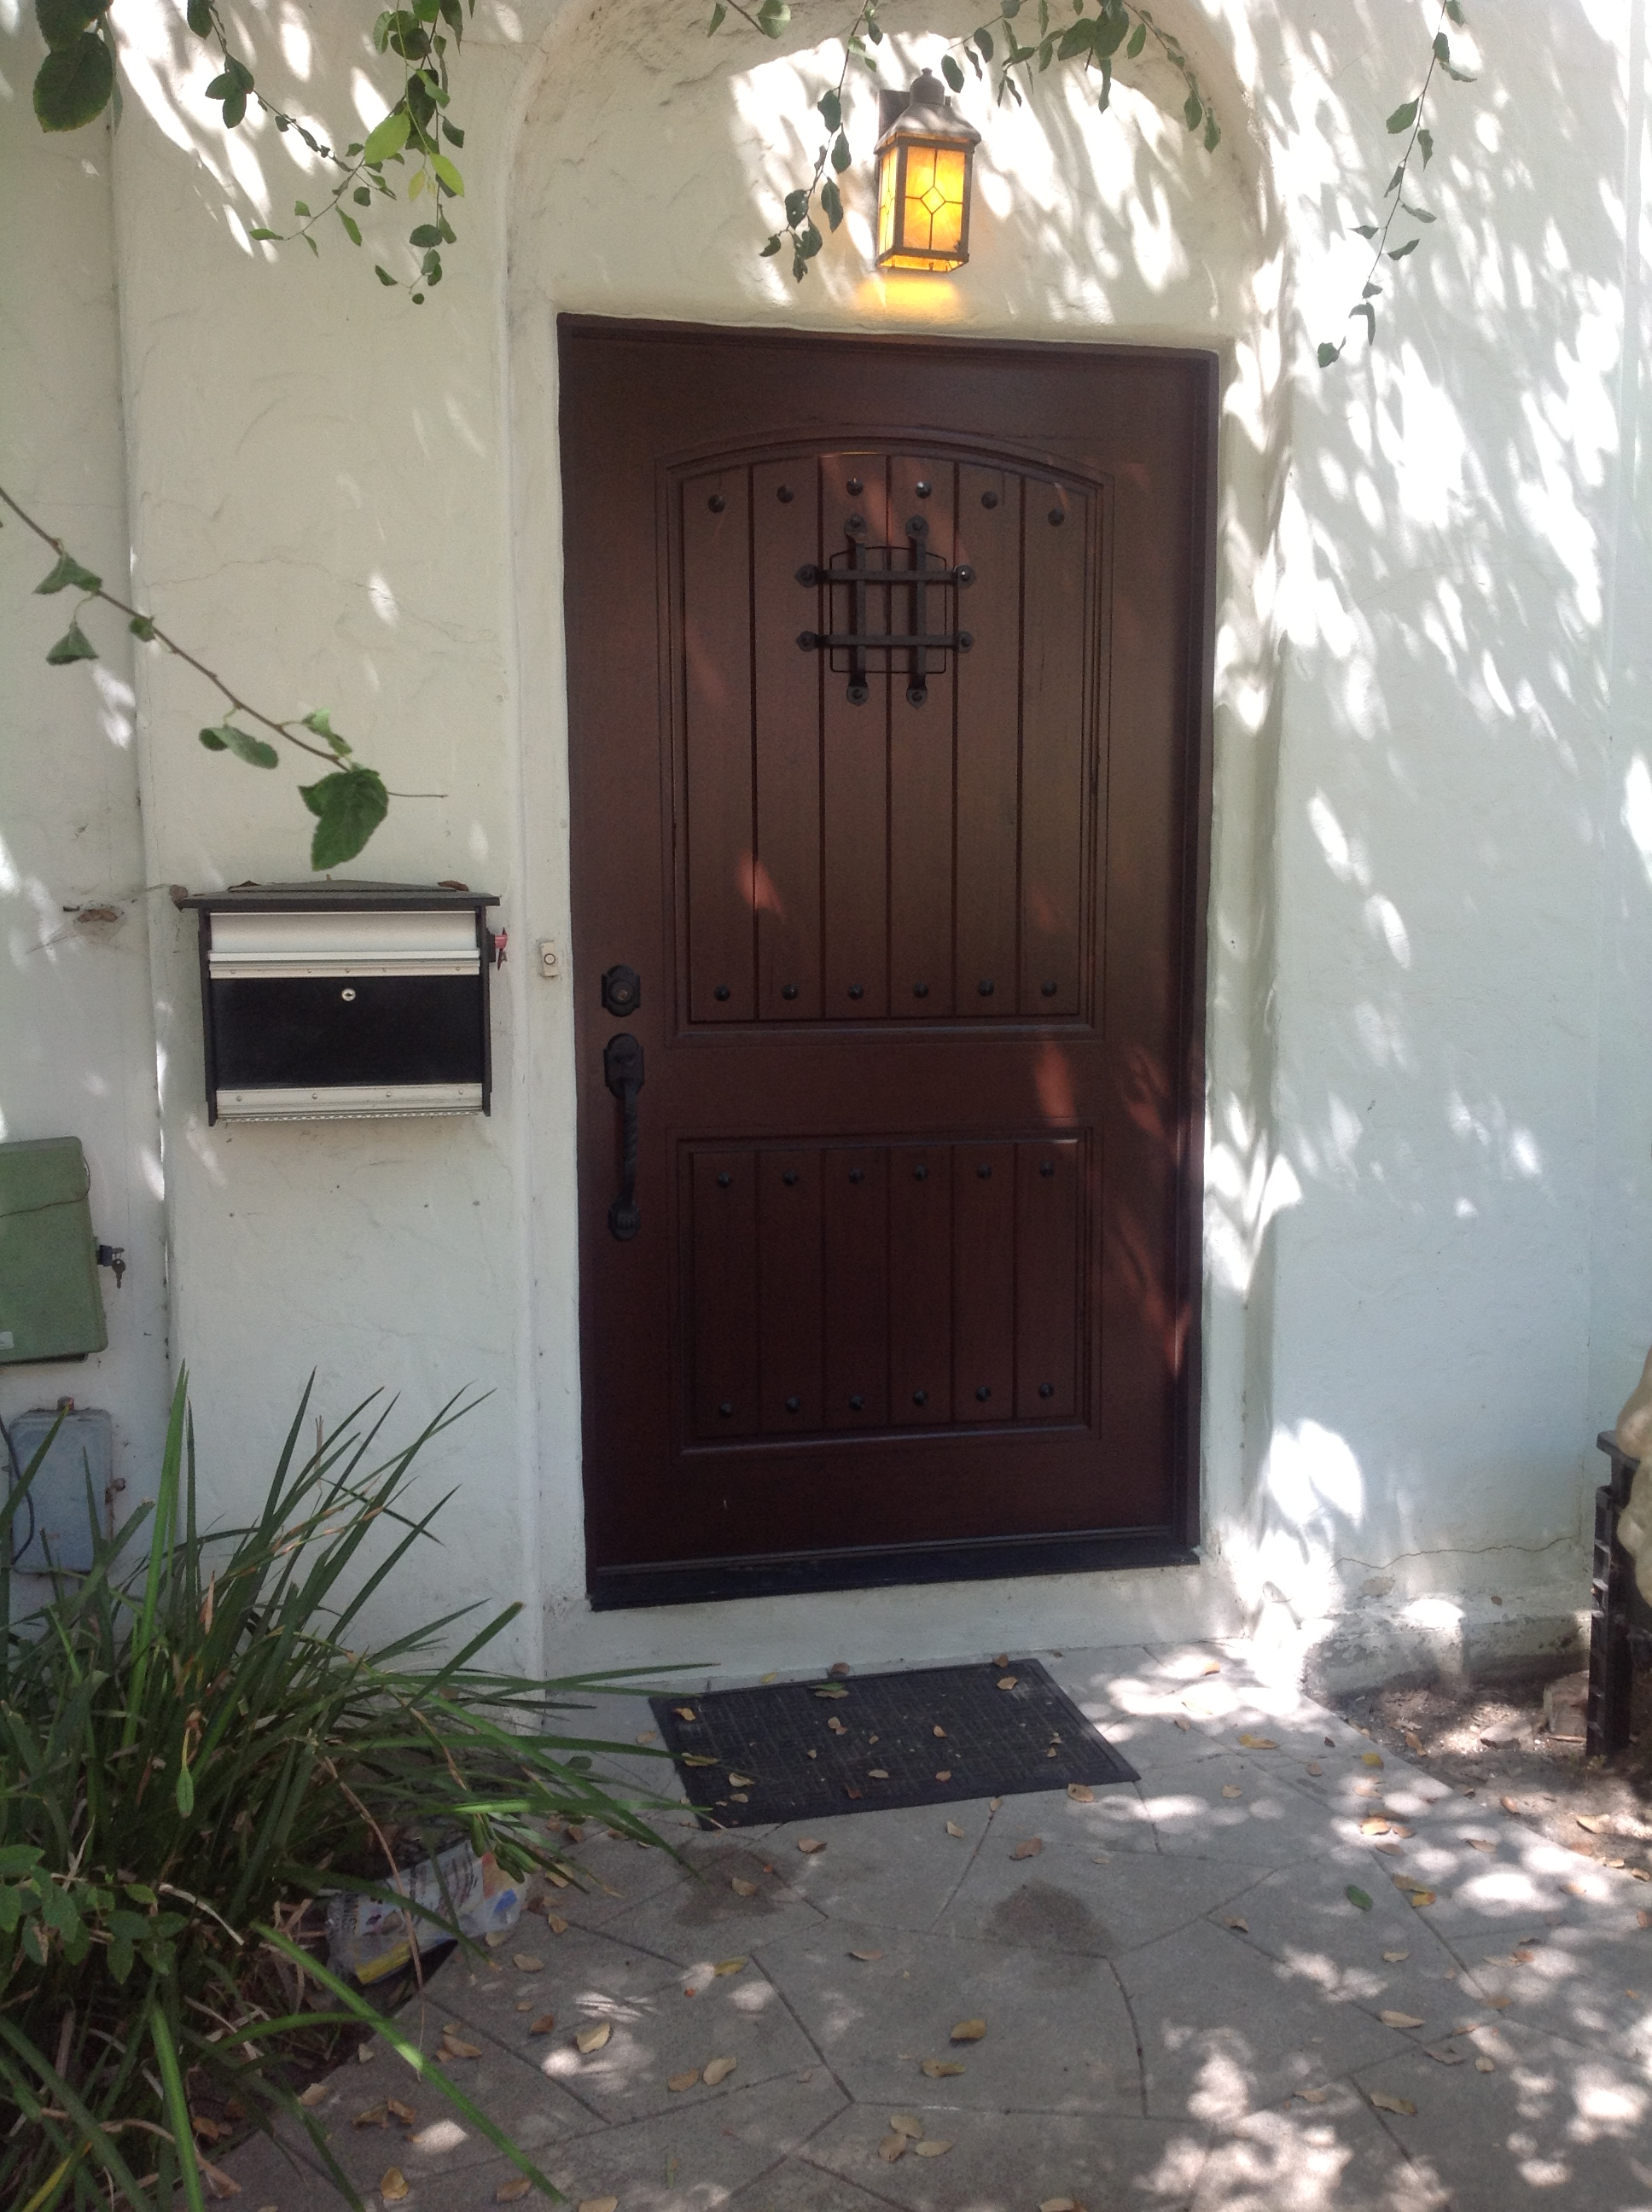 BEAUTIFUL NEW DOOR INSTALLED BY TASHMAN'S USING ESCON DOORS